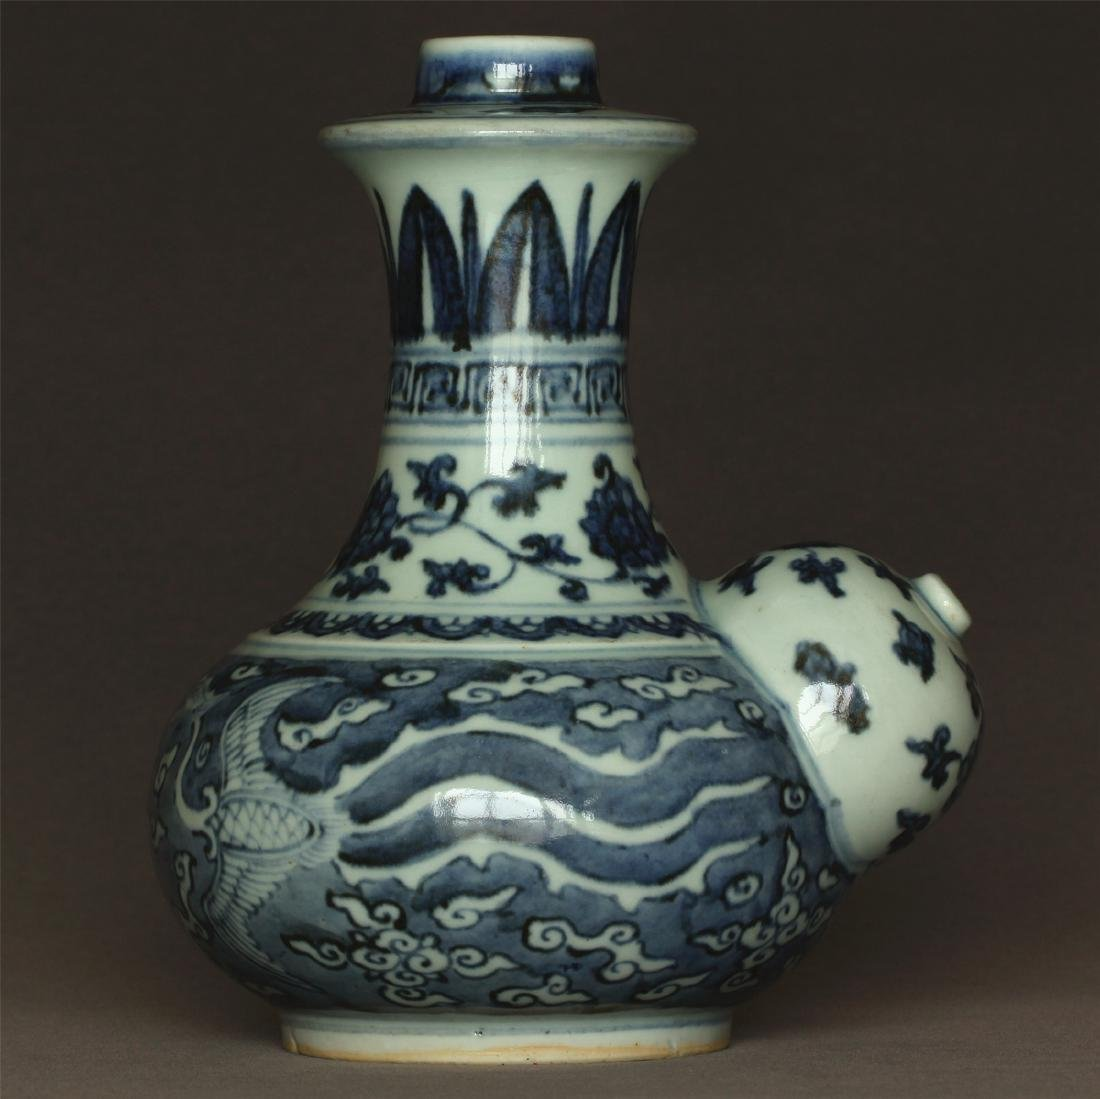 Blue and white porcelain pot of Ming Dynasty JiaJing - 3